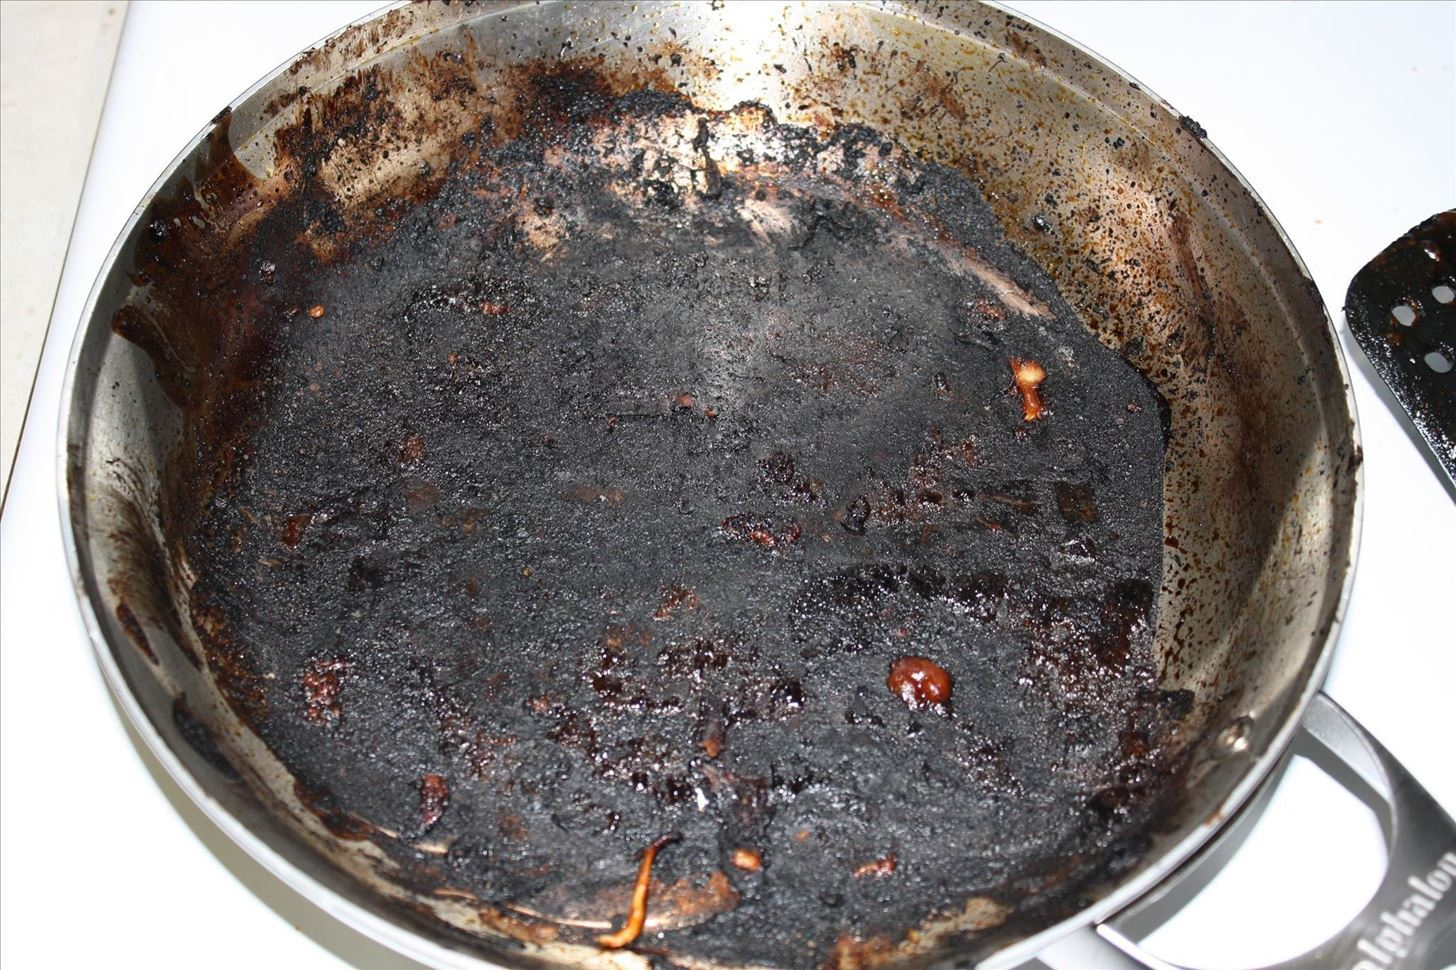 How to clean uncleanable scorched spots from pots pans food hacks daily - Clean burnt grease oven pots pans ...